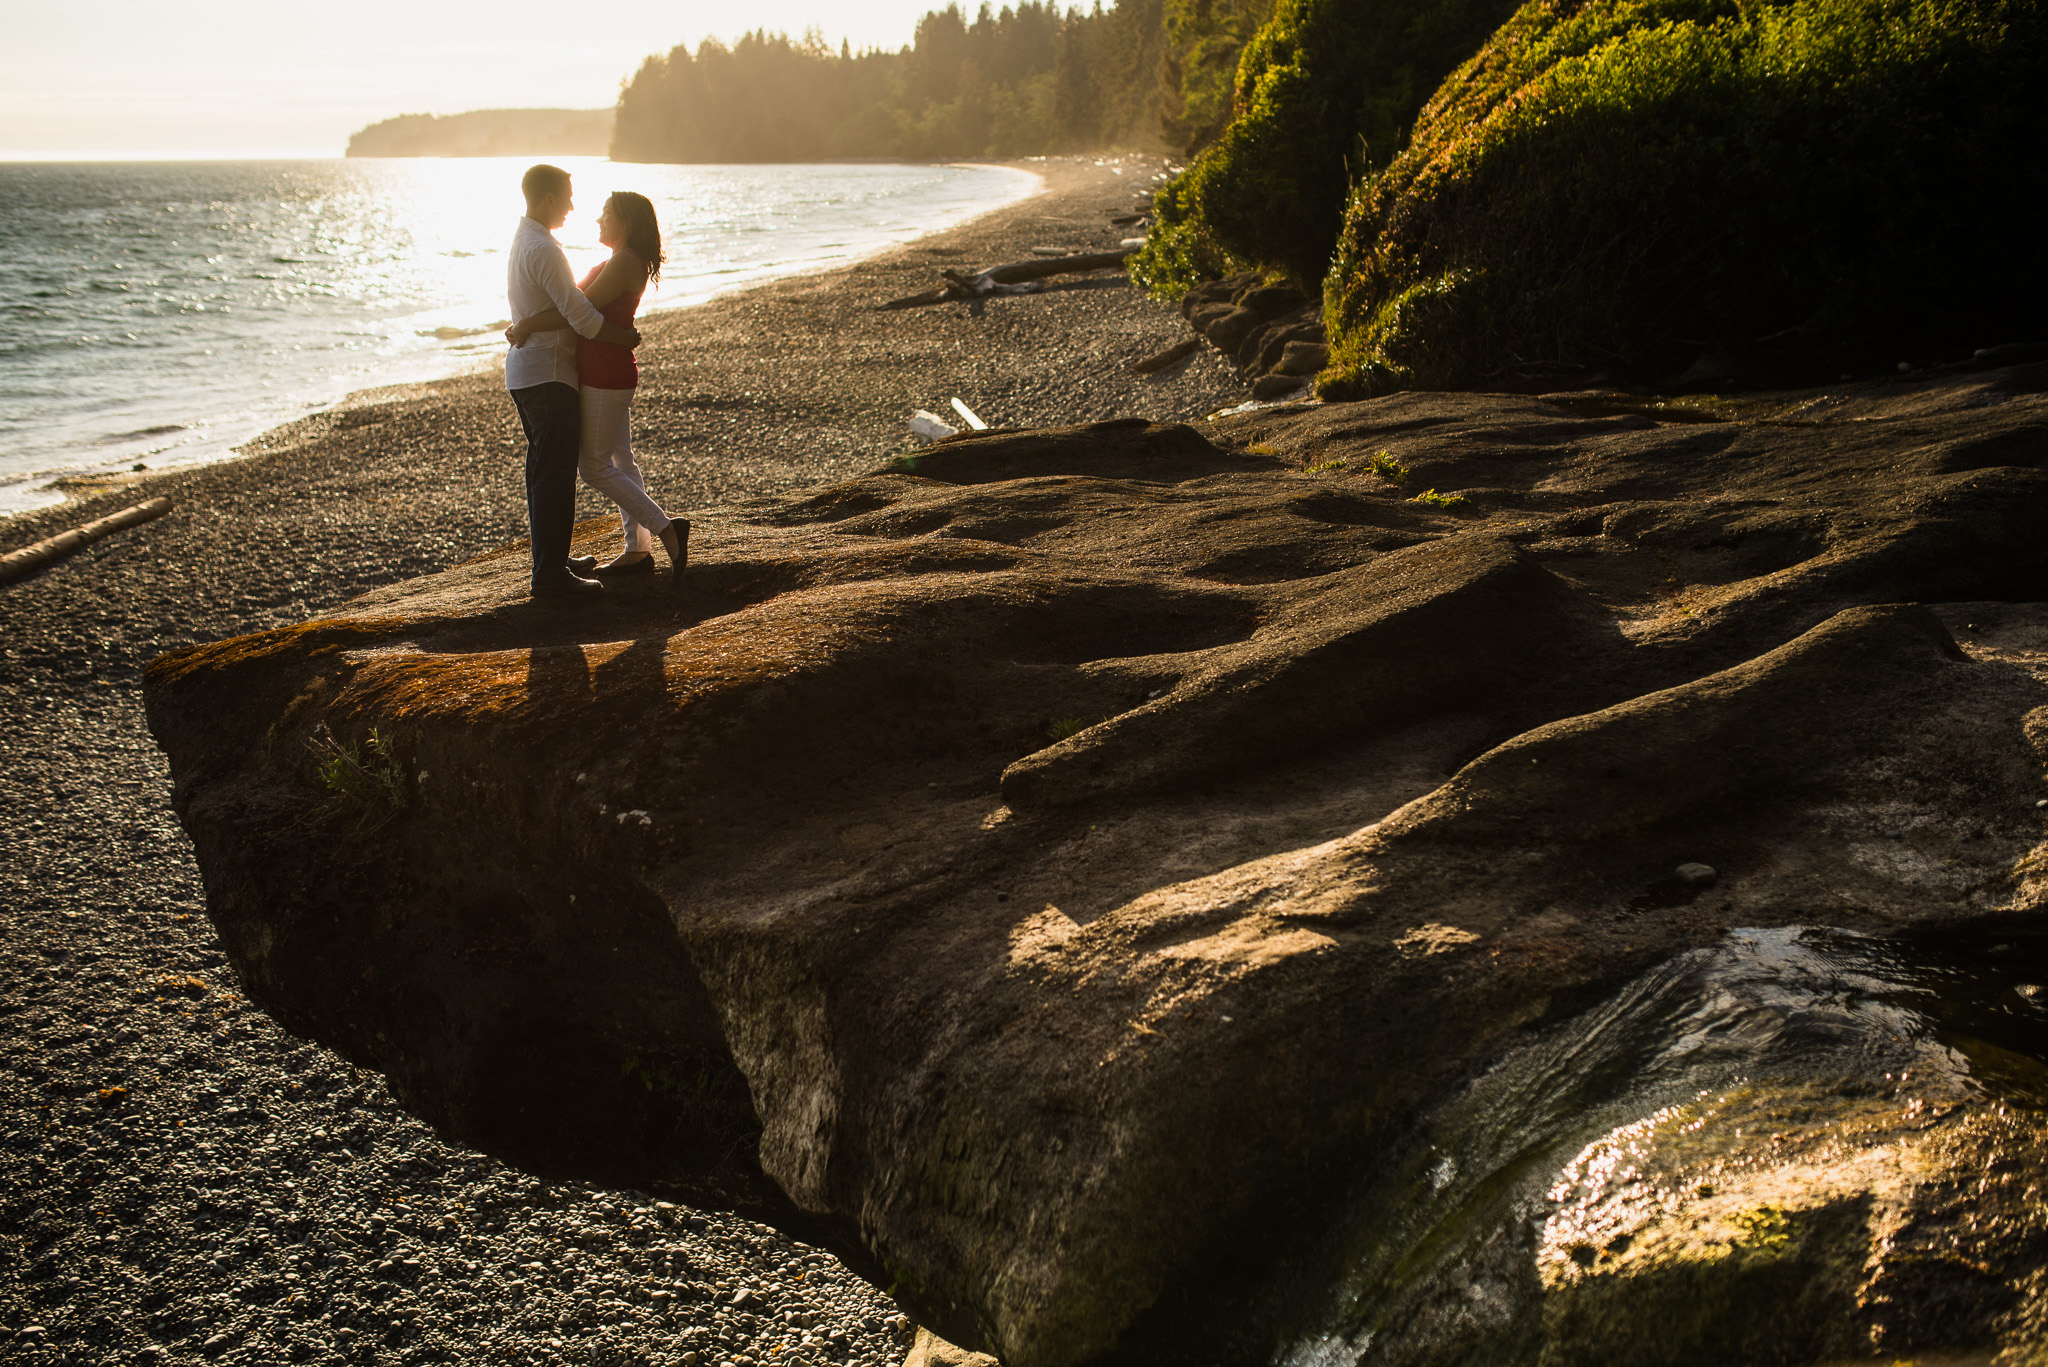 victoria-wedding-photographer-sandcut-beach-engagement-11.jpg